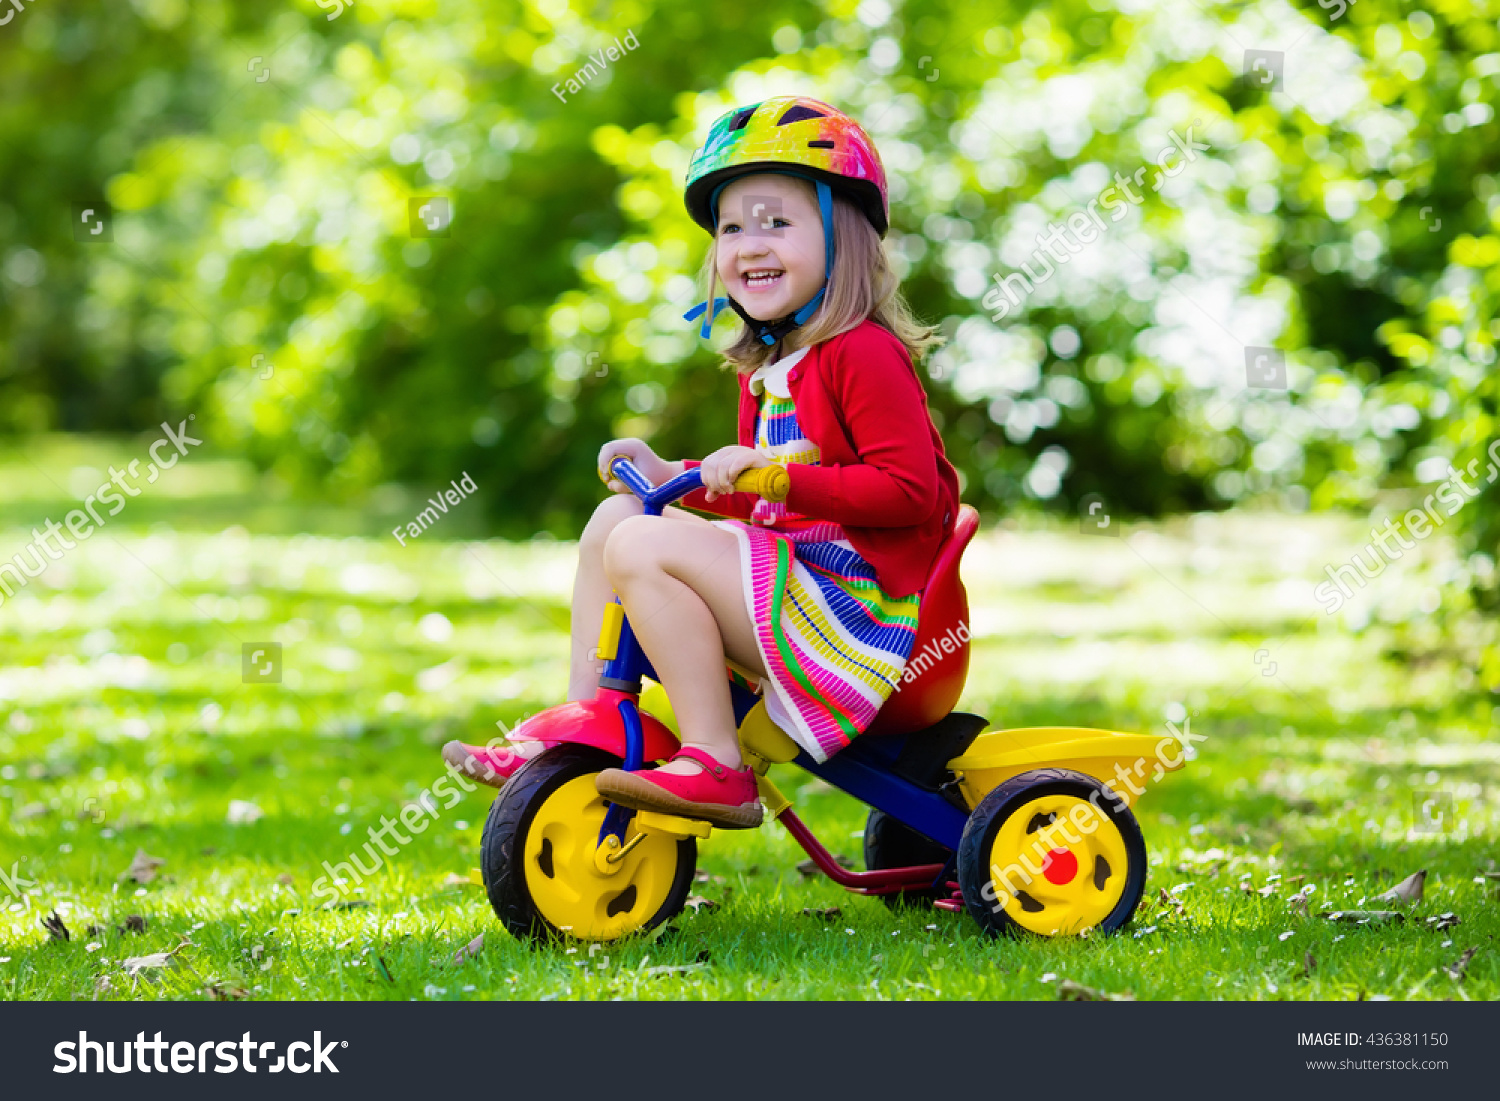 94ca829ac61 Cute girl wearing safety helmet riding her tricycle in sunny summer park.  Kids ride bicycle